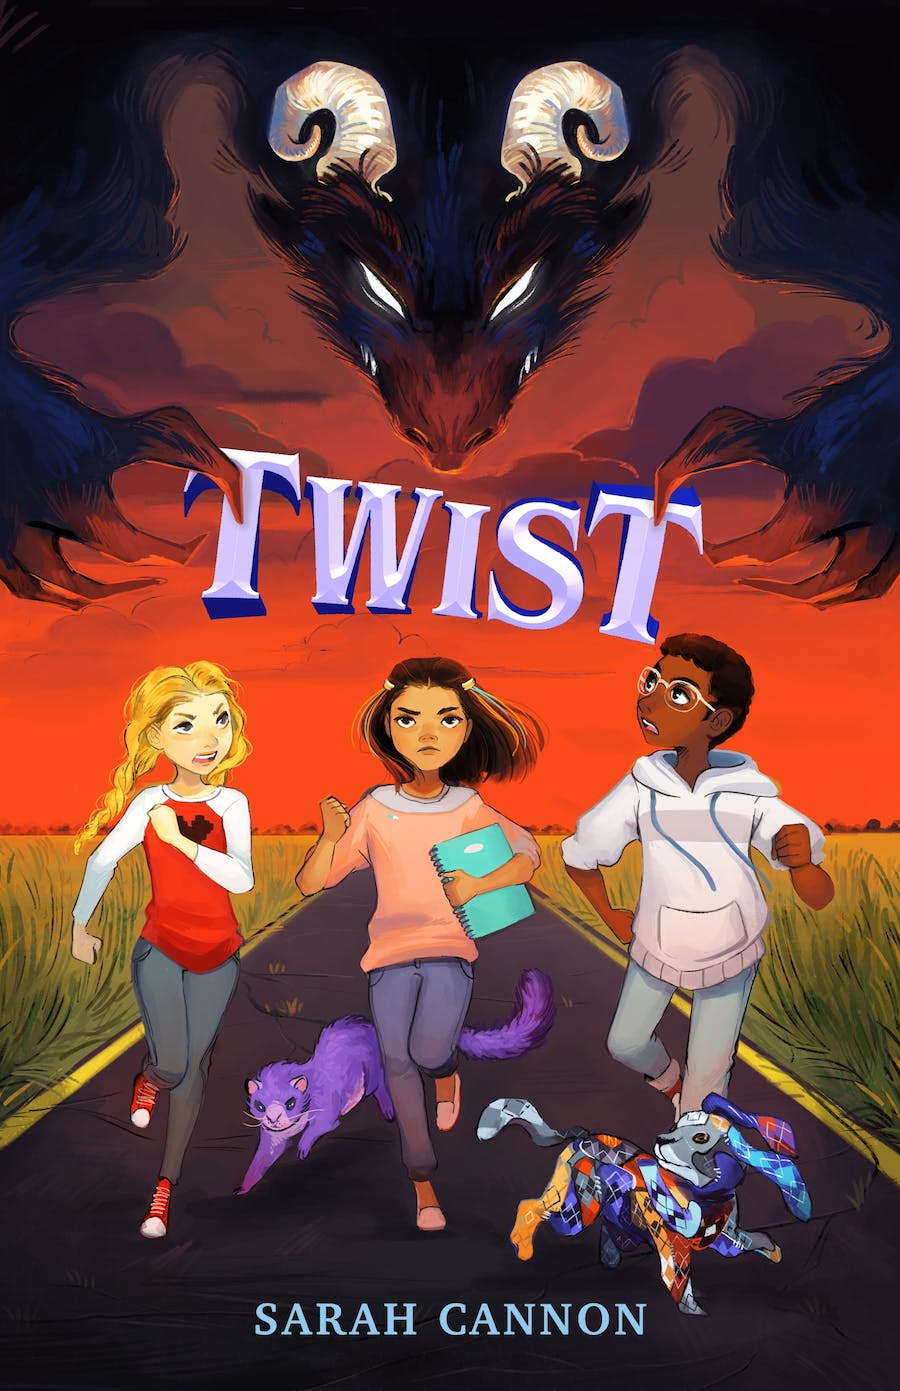 Twist by Sarah Cannon